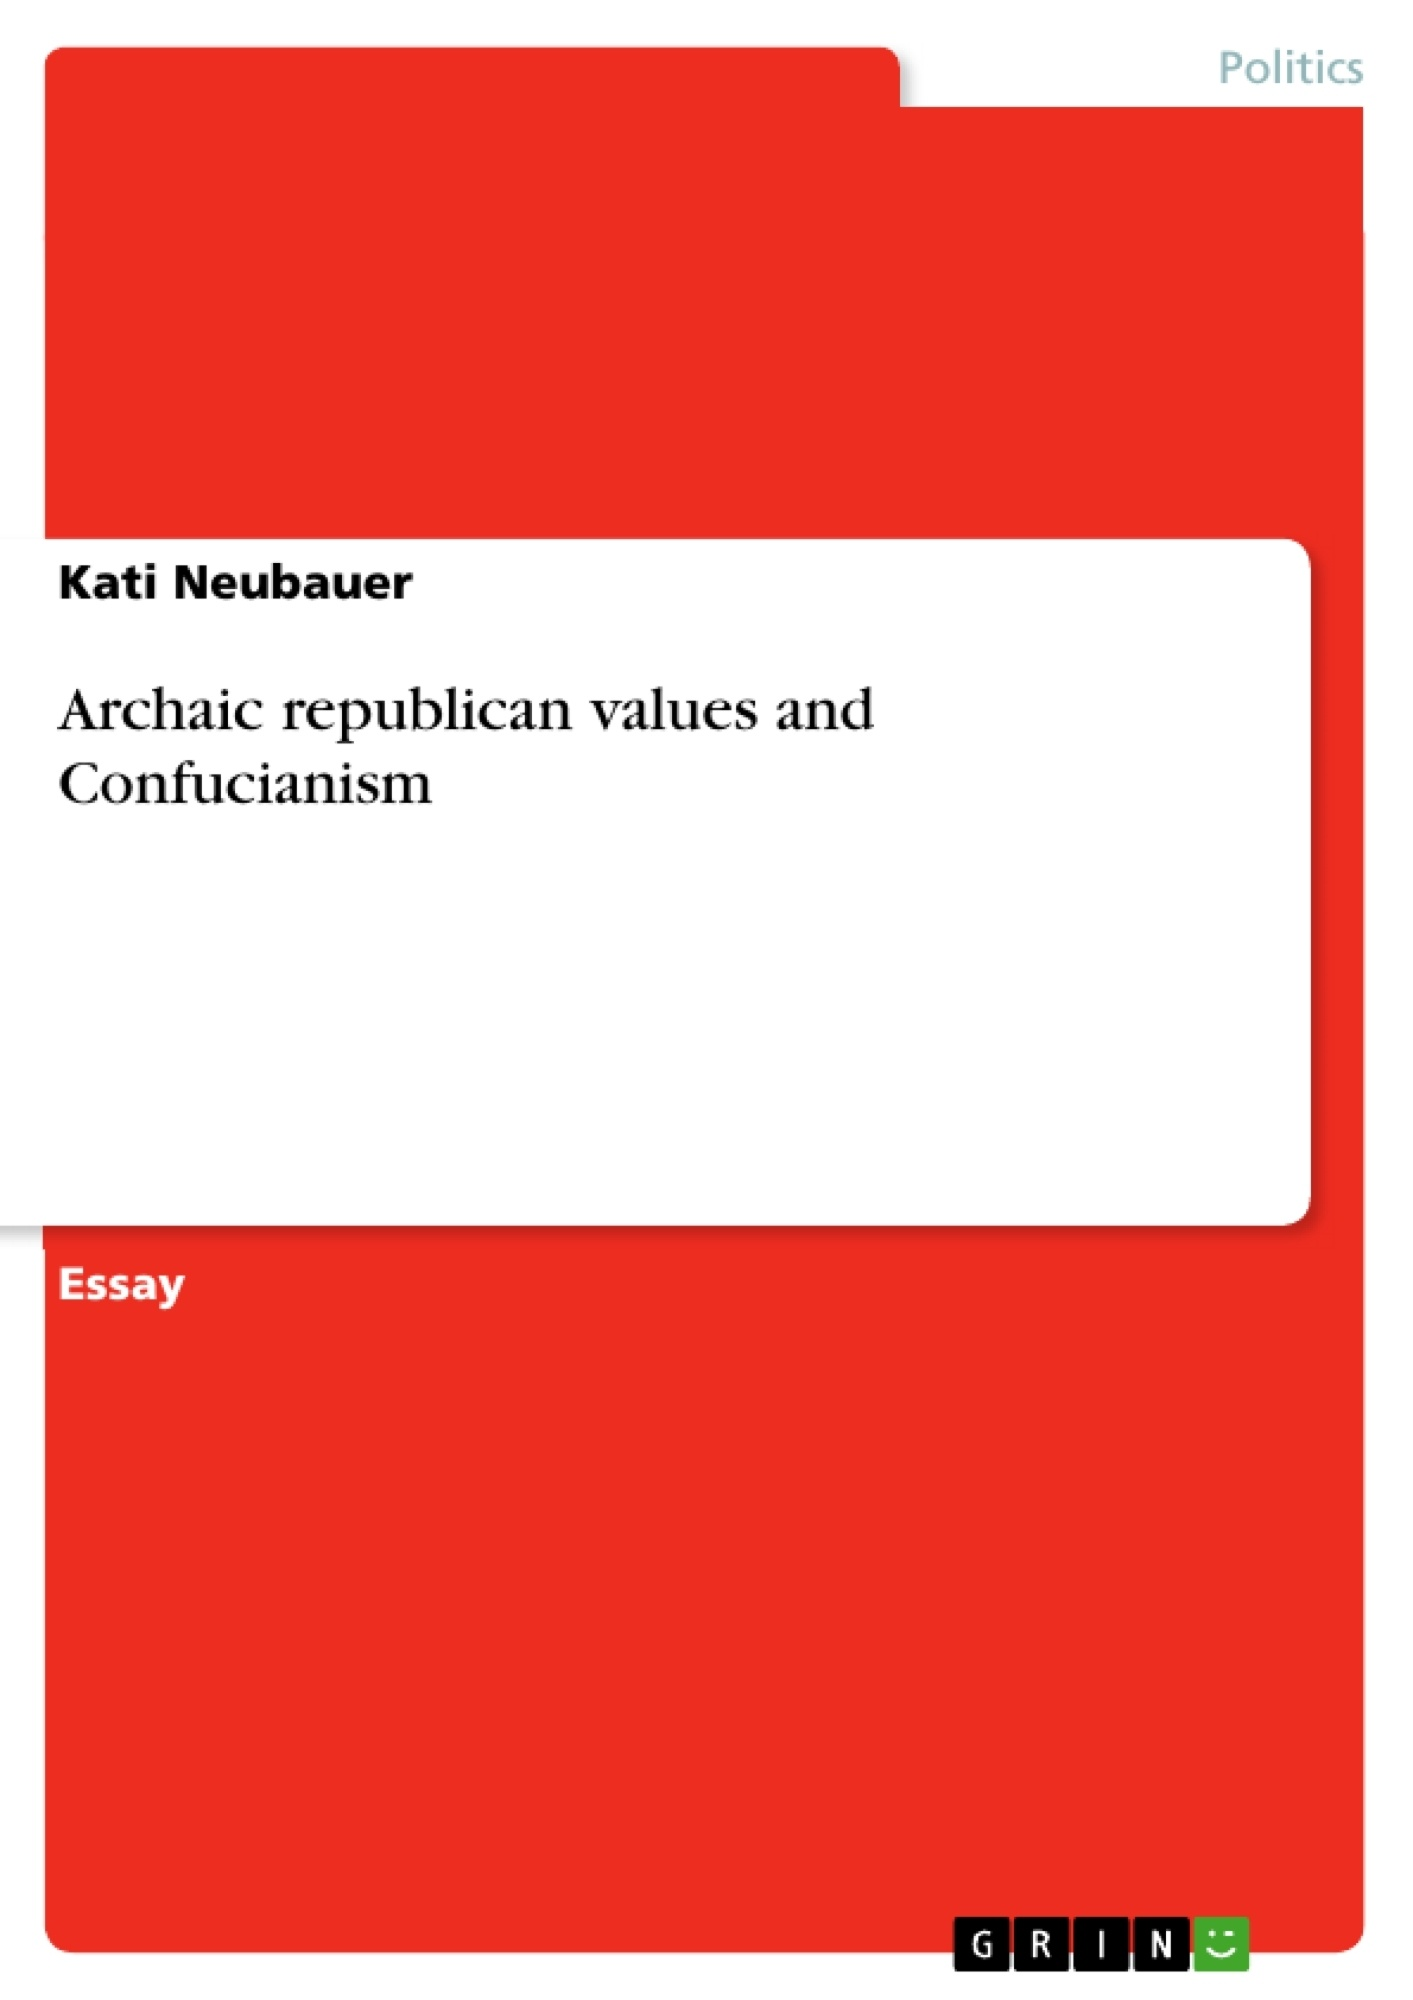 Title: Archaic republican values and Confucianism